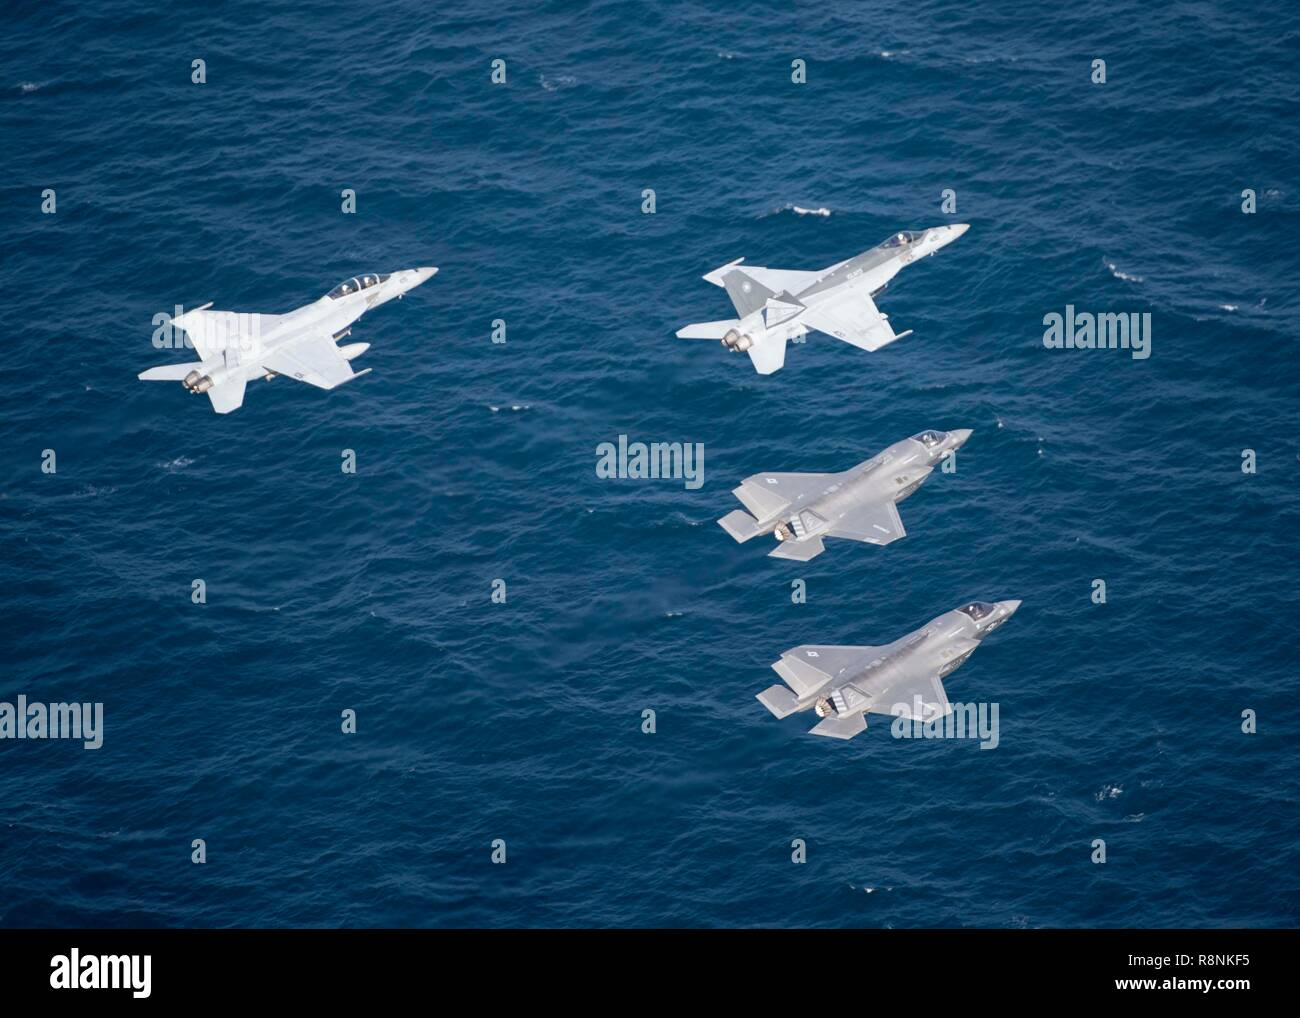 U.S. Marine Corps F-35B Lightning II stealth fighters fly in formation with Navy F/A-18 Super Hornets during a patrol from the Nimitz-class aircraft carrier USS John C. Stennis December 14, 2018 in the Arabian Sea. - Stock Image